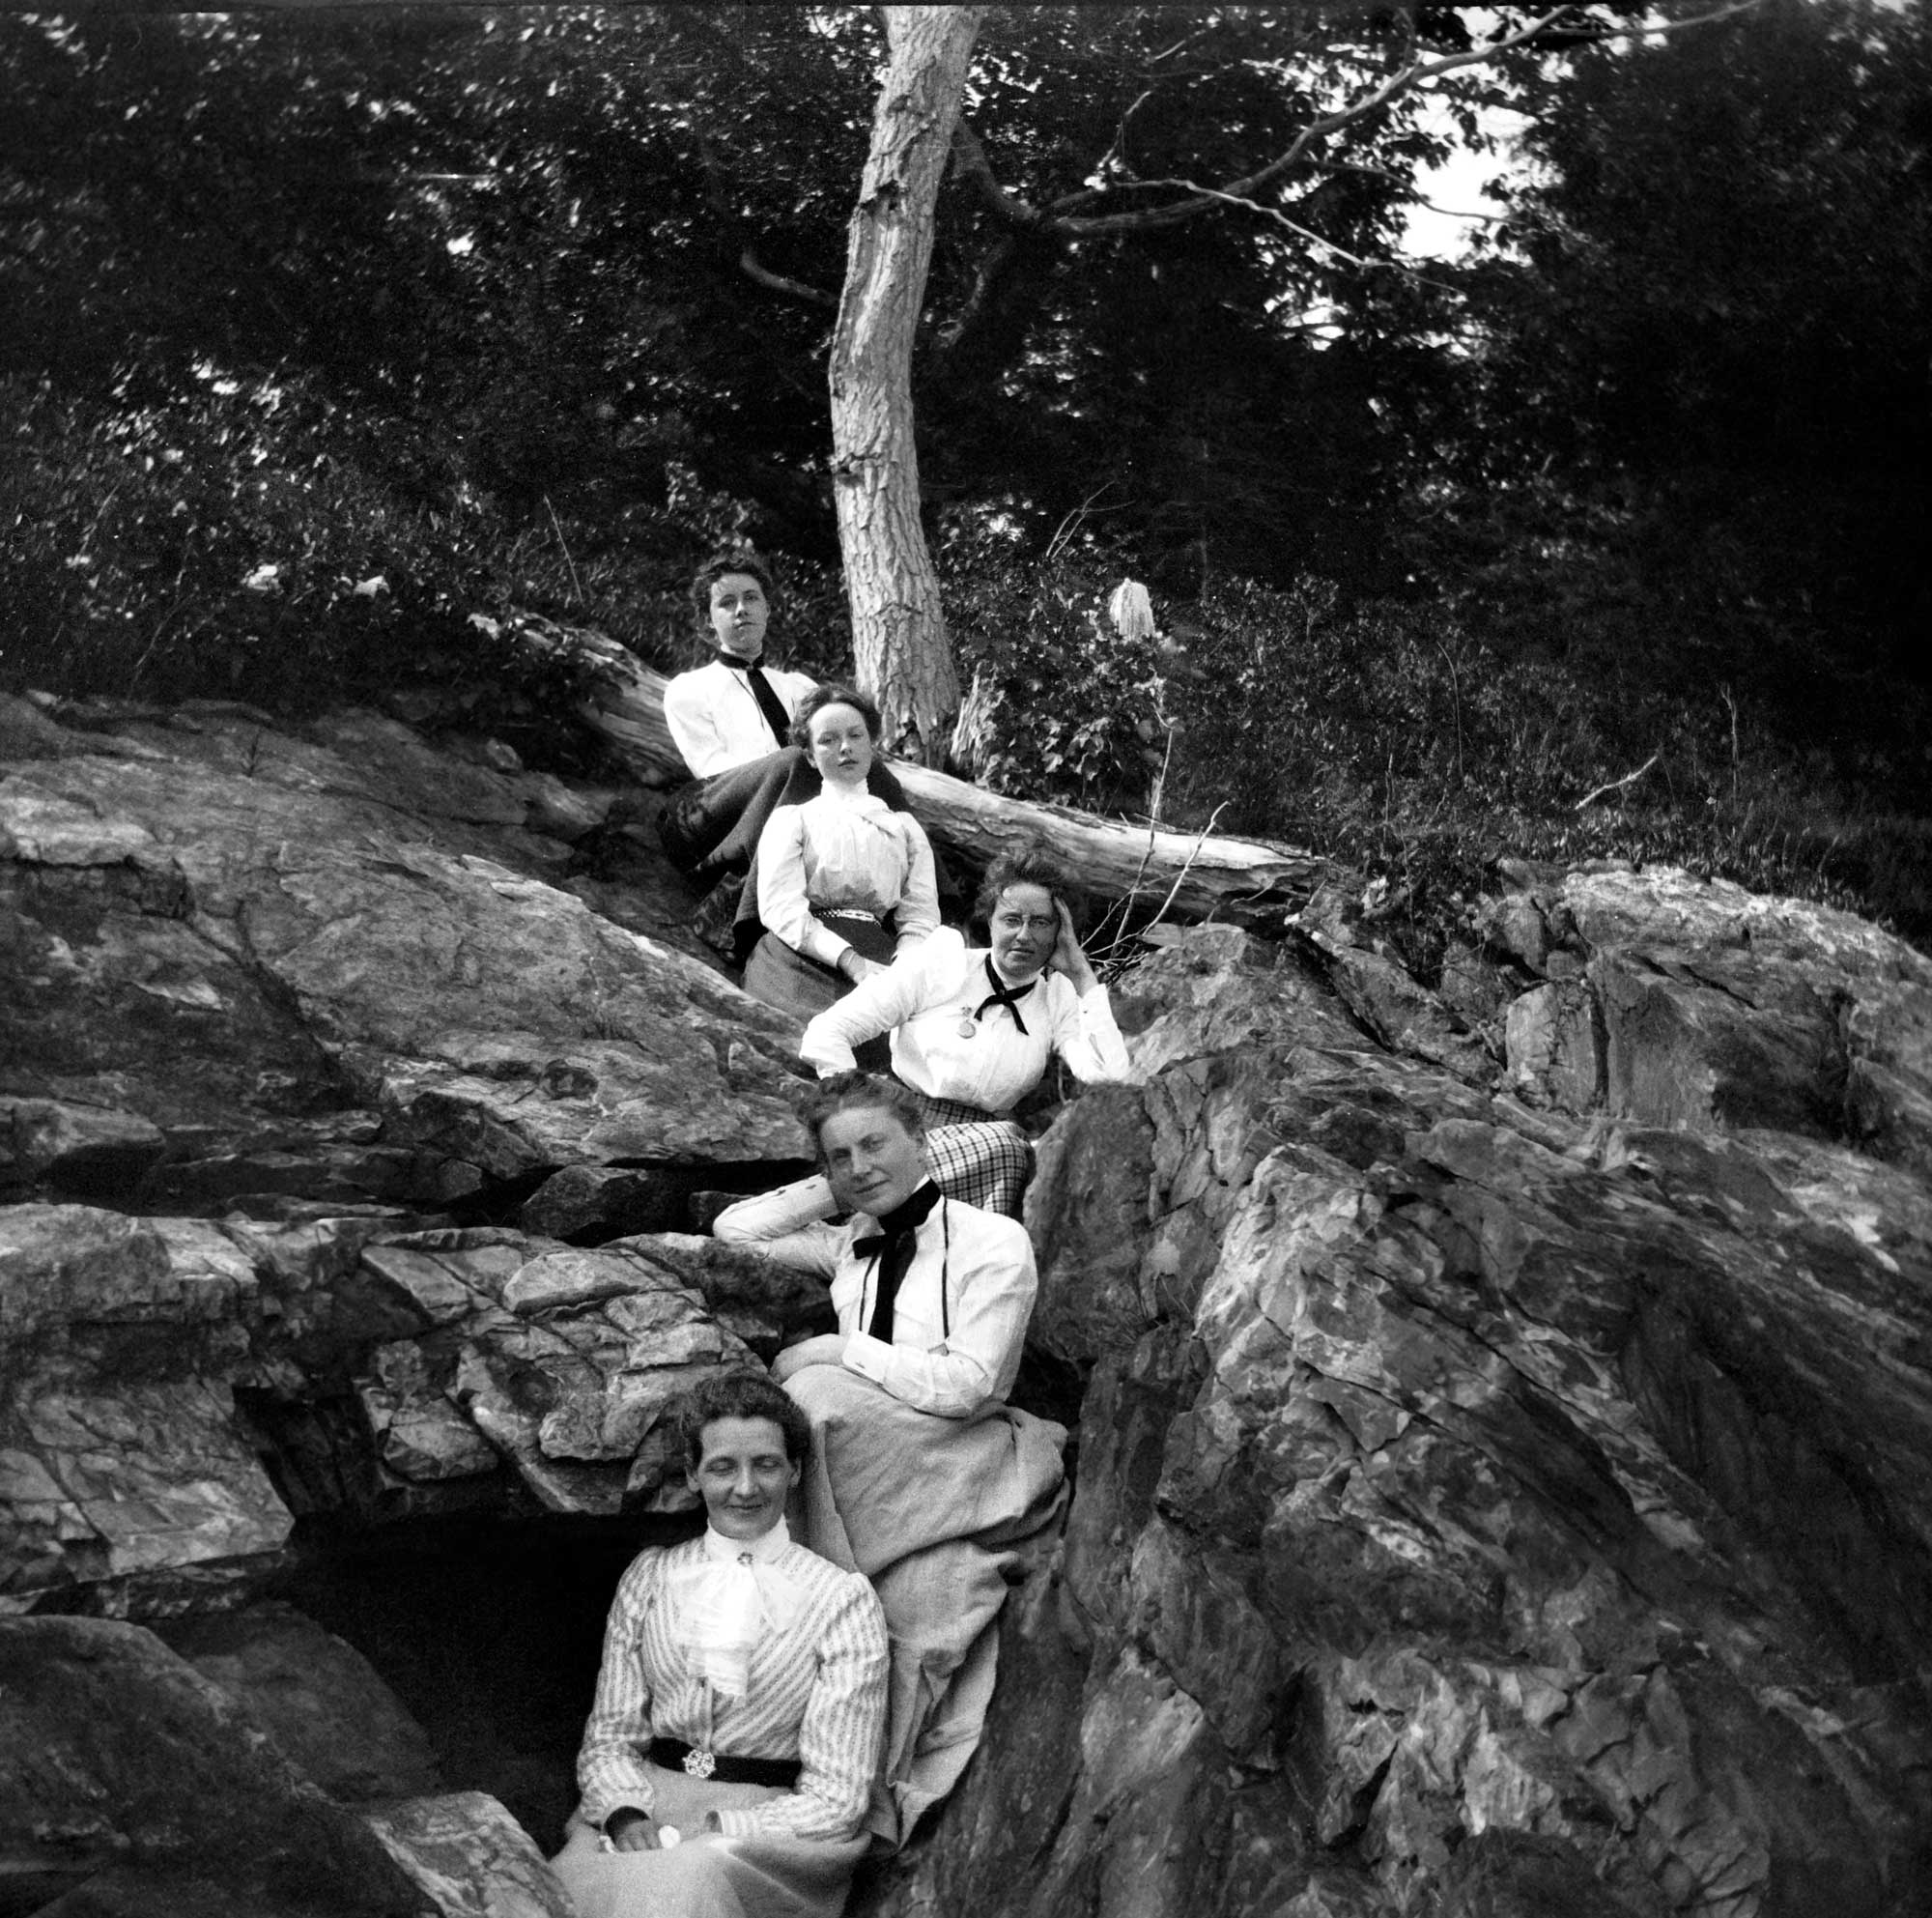 1900 - a picnic at Sherman's Point in Camden. Theresa Babb is seated in front.